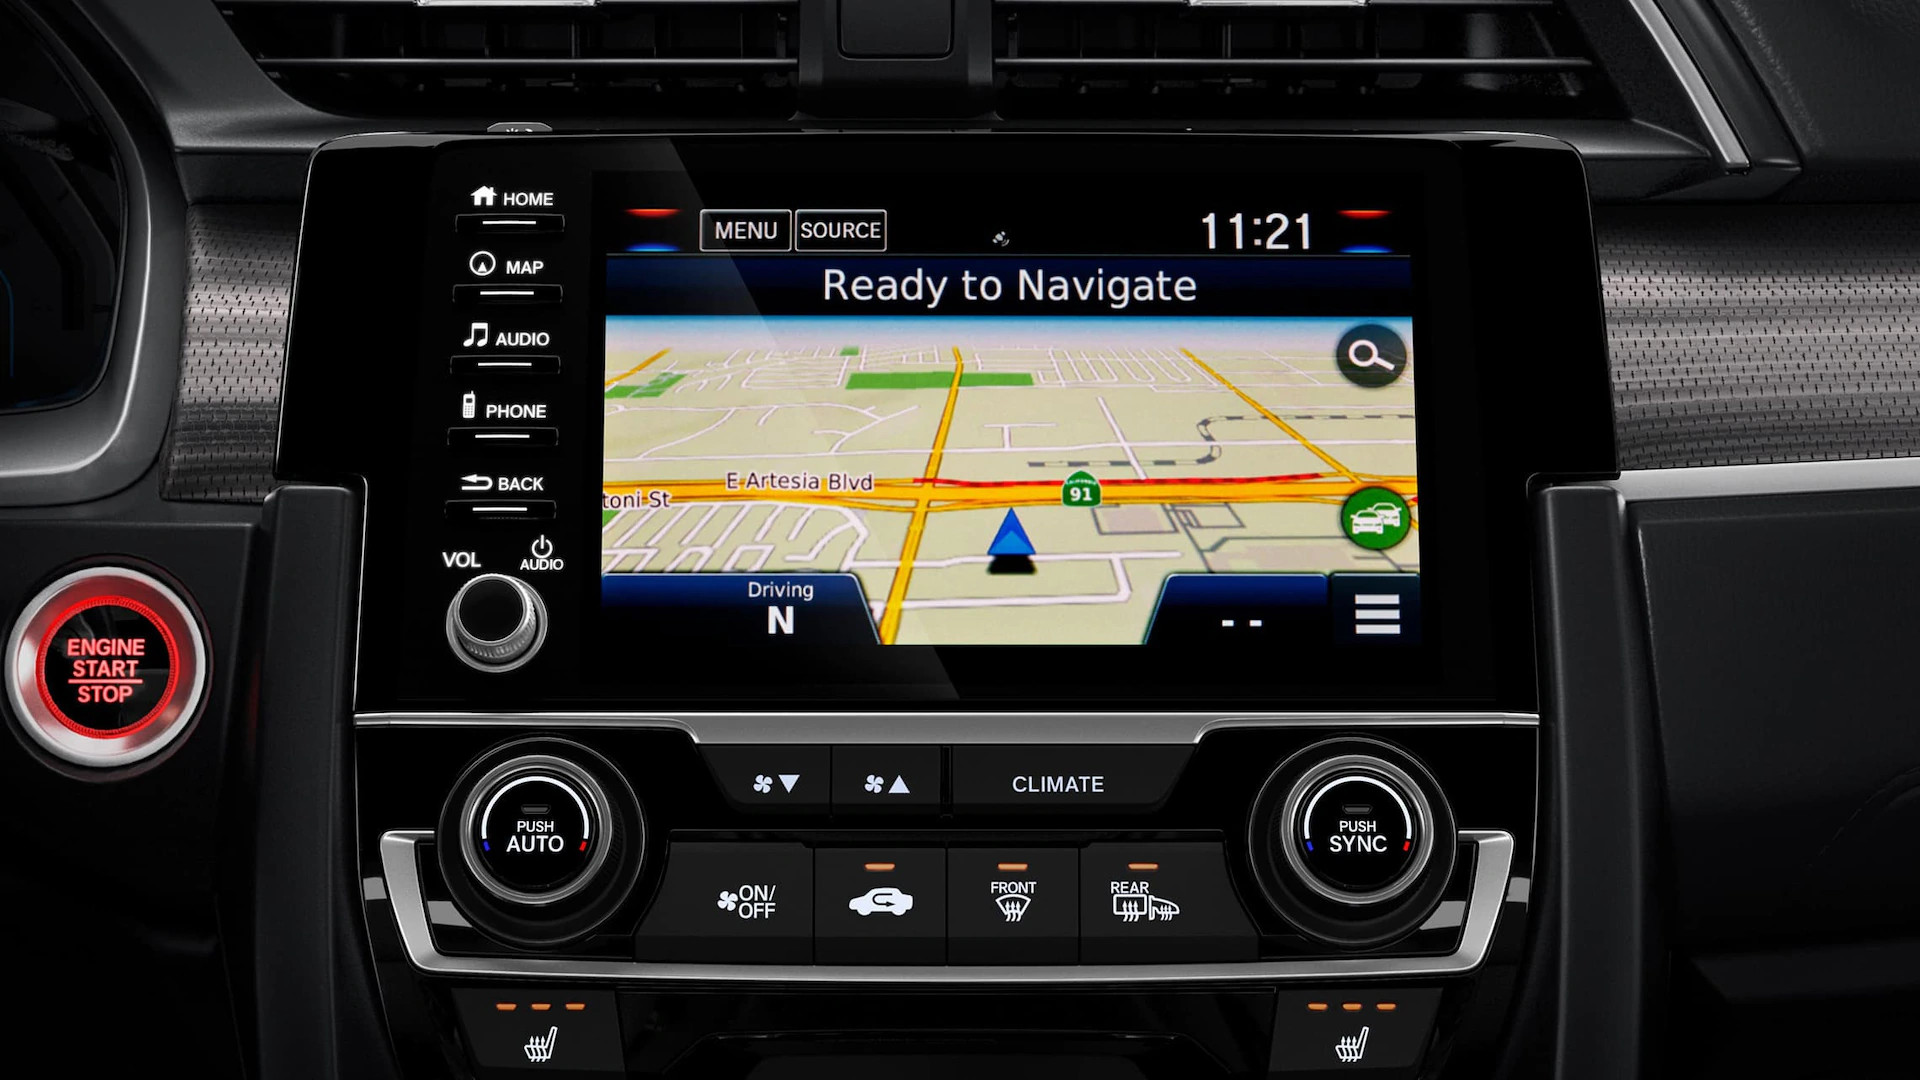 2020 Civic with Available Navigation